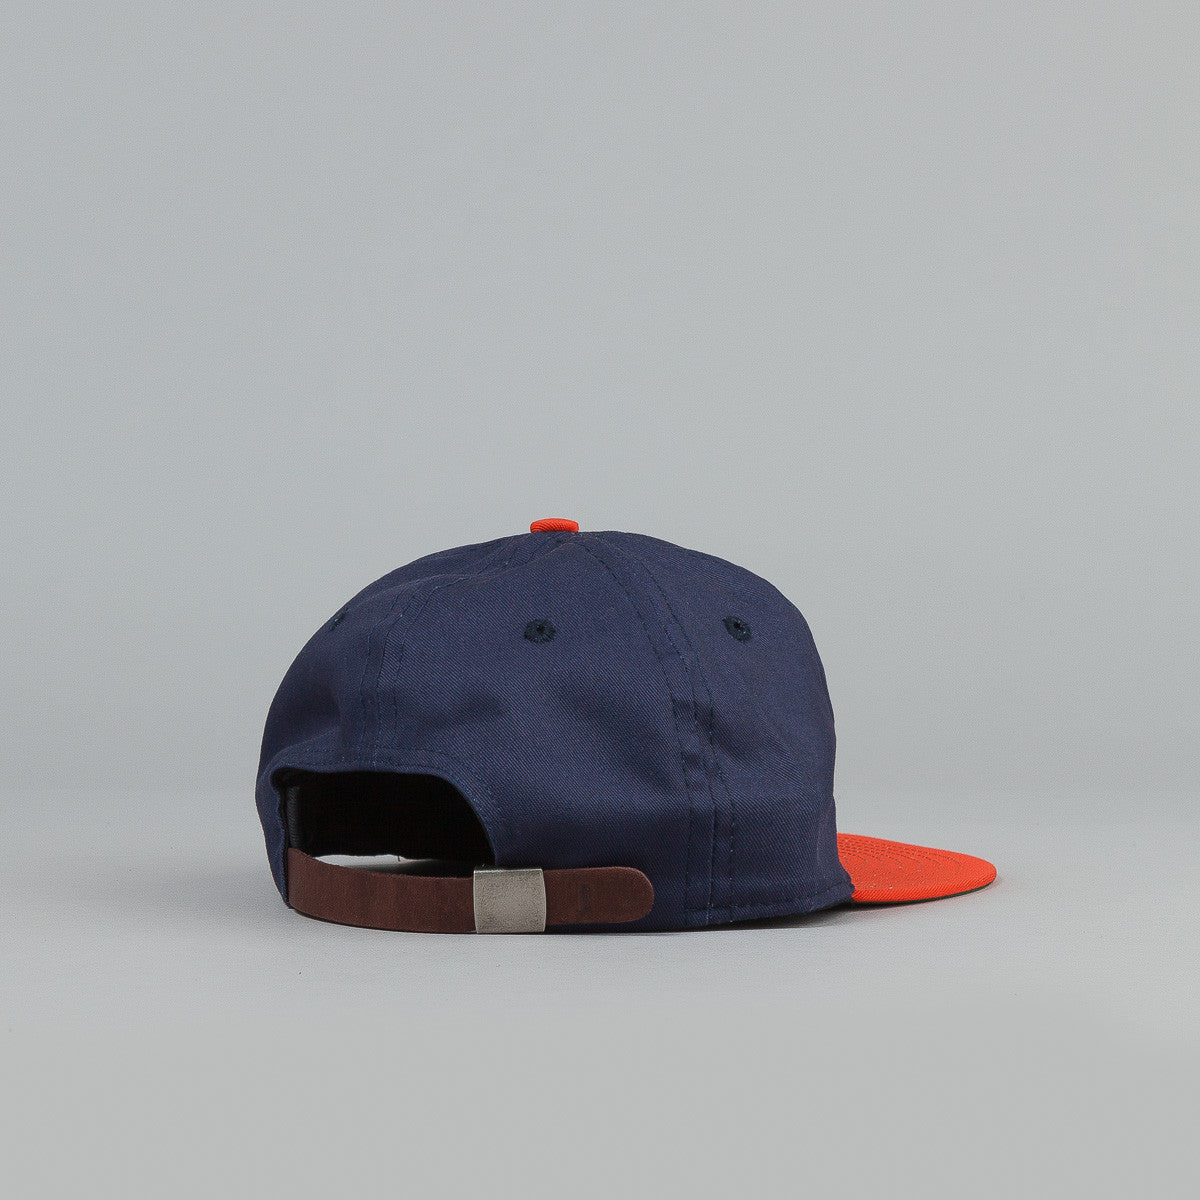 Ebbets Field Flannels Brooklyn Bushwicks Strapback Cap Navy / Orange